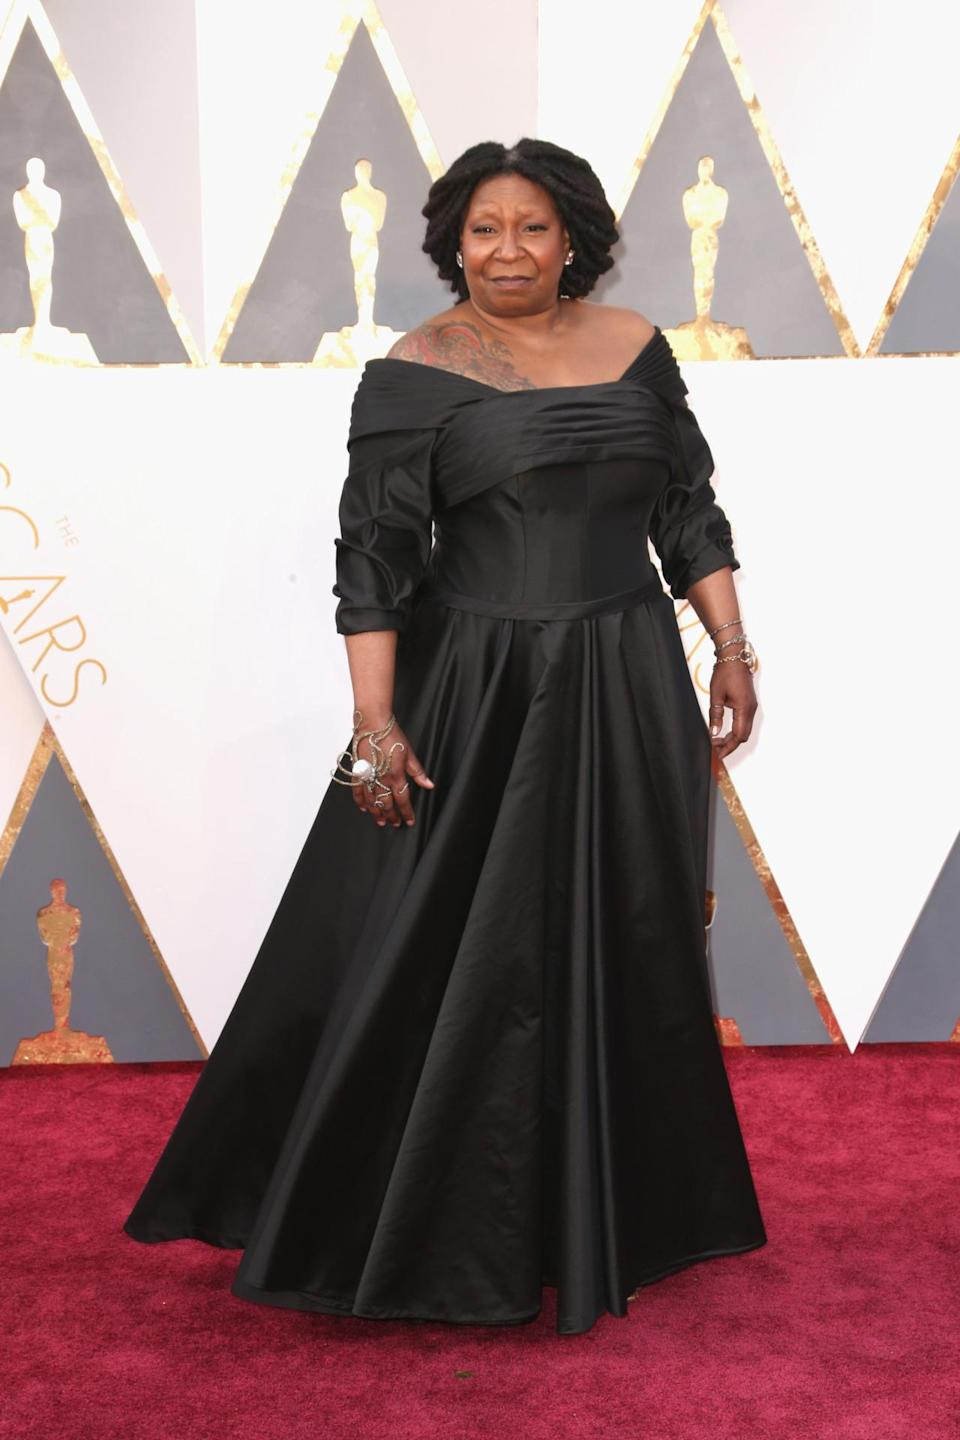 <p>Whoopi Goldberg, who showed off a large shoulder tattoo that the world didn't really know about, wore a black gown custom-made for her by Deadly Dames. The look was inspired by a dress Bette Davis wore in <i>All About Eve</i>. She paired the sophisticated dress with some kooky octopus rings. <i><i>(Photo: Getty Images)</i></i></p>